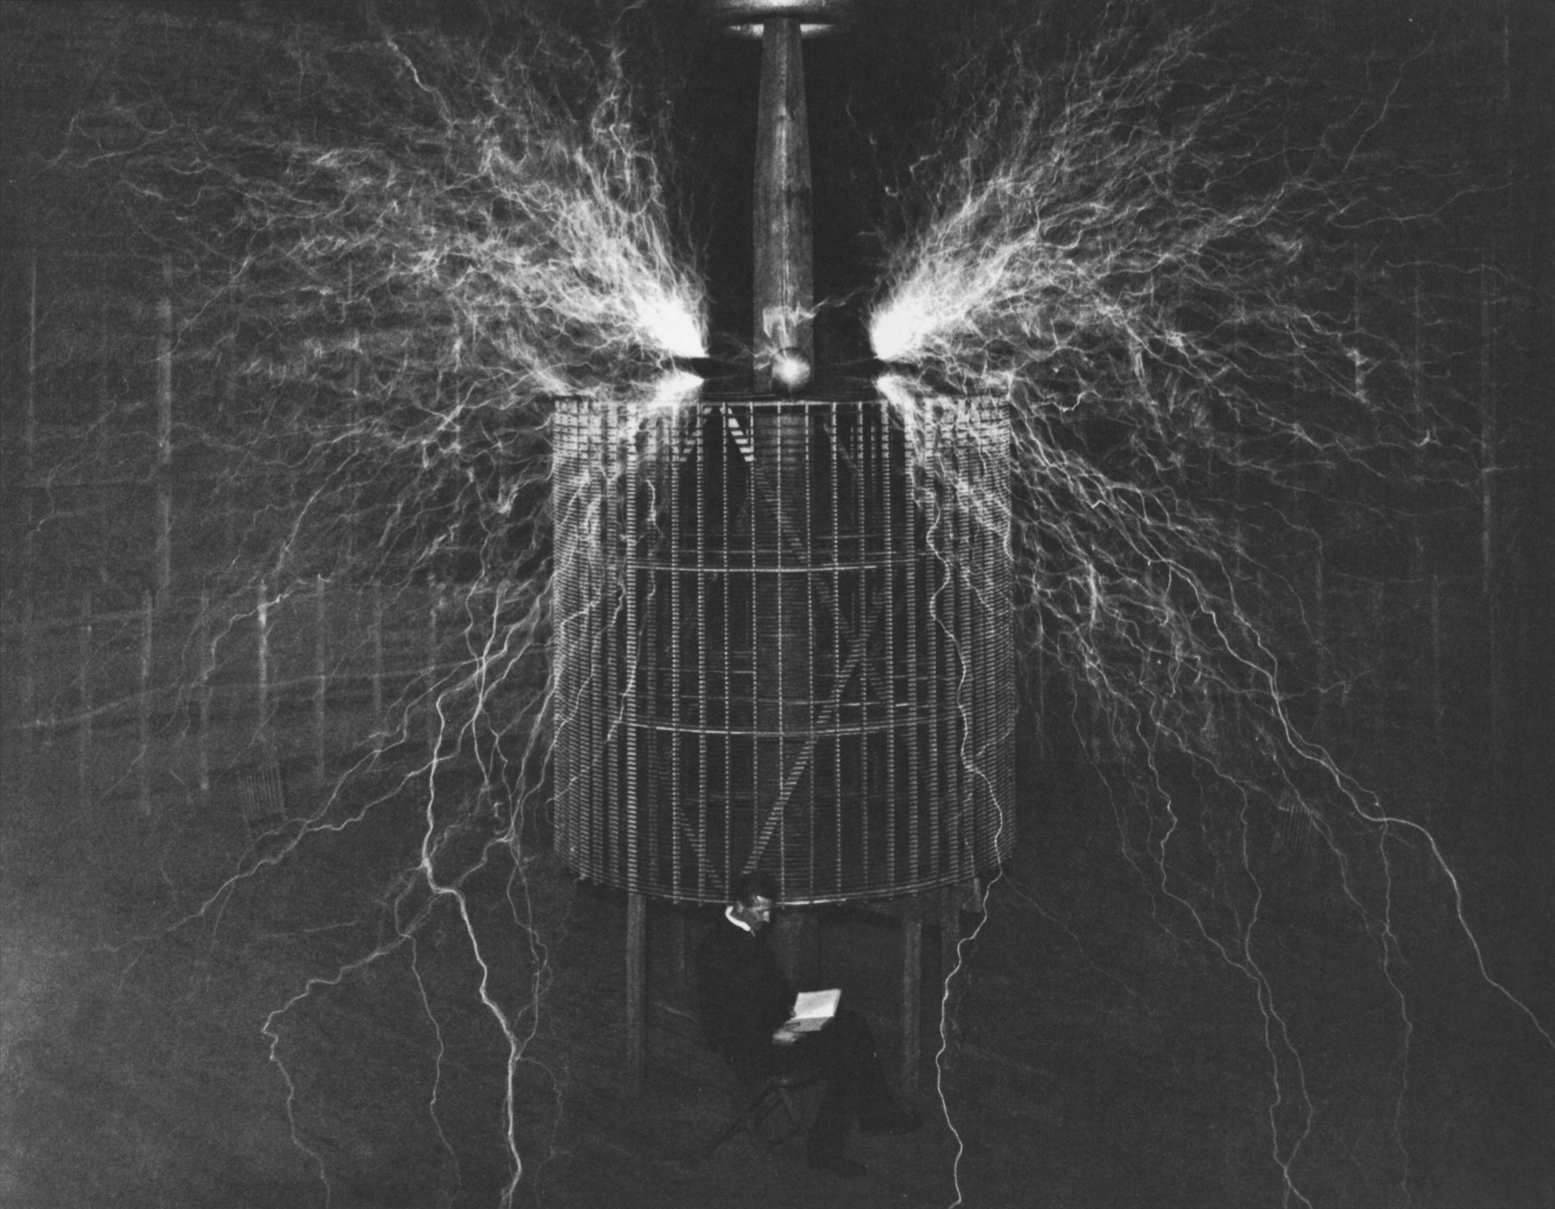 the unstoppable nikola tesla ii adaptive curmudgeon another double exposure i wonder what the hell he s reading in that book